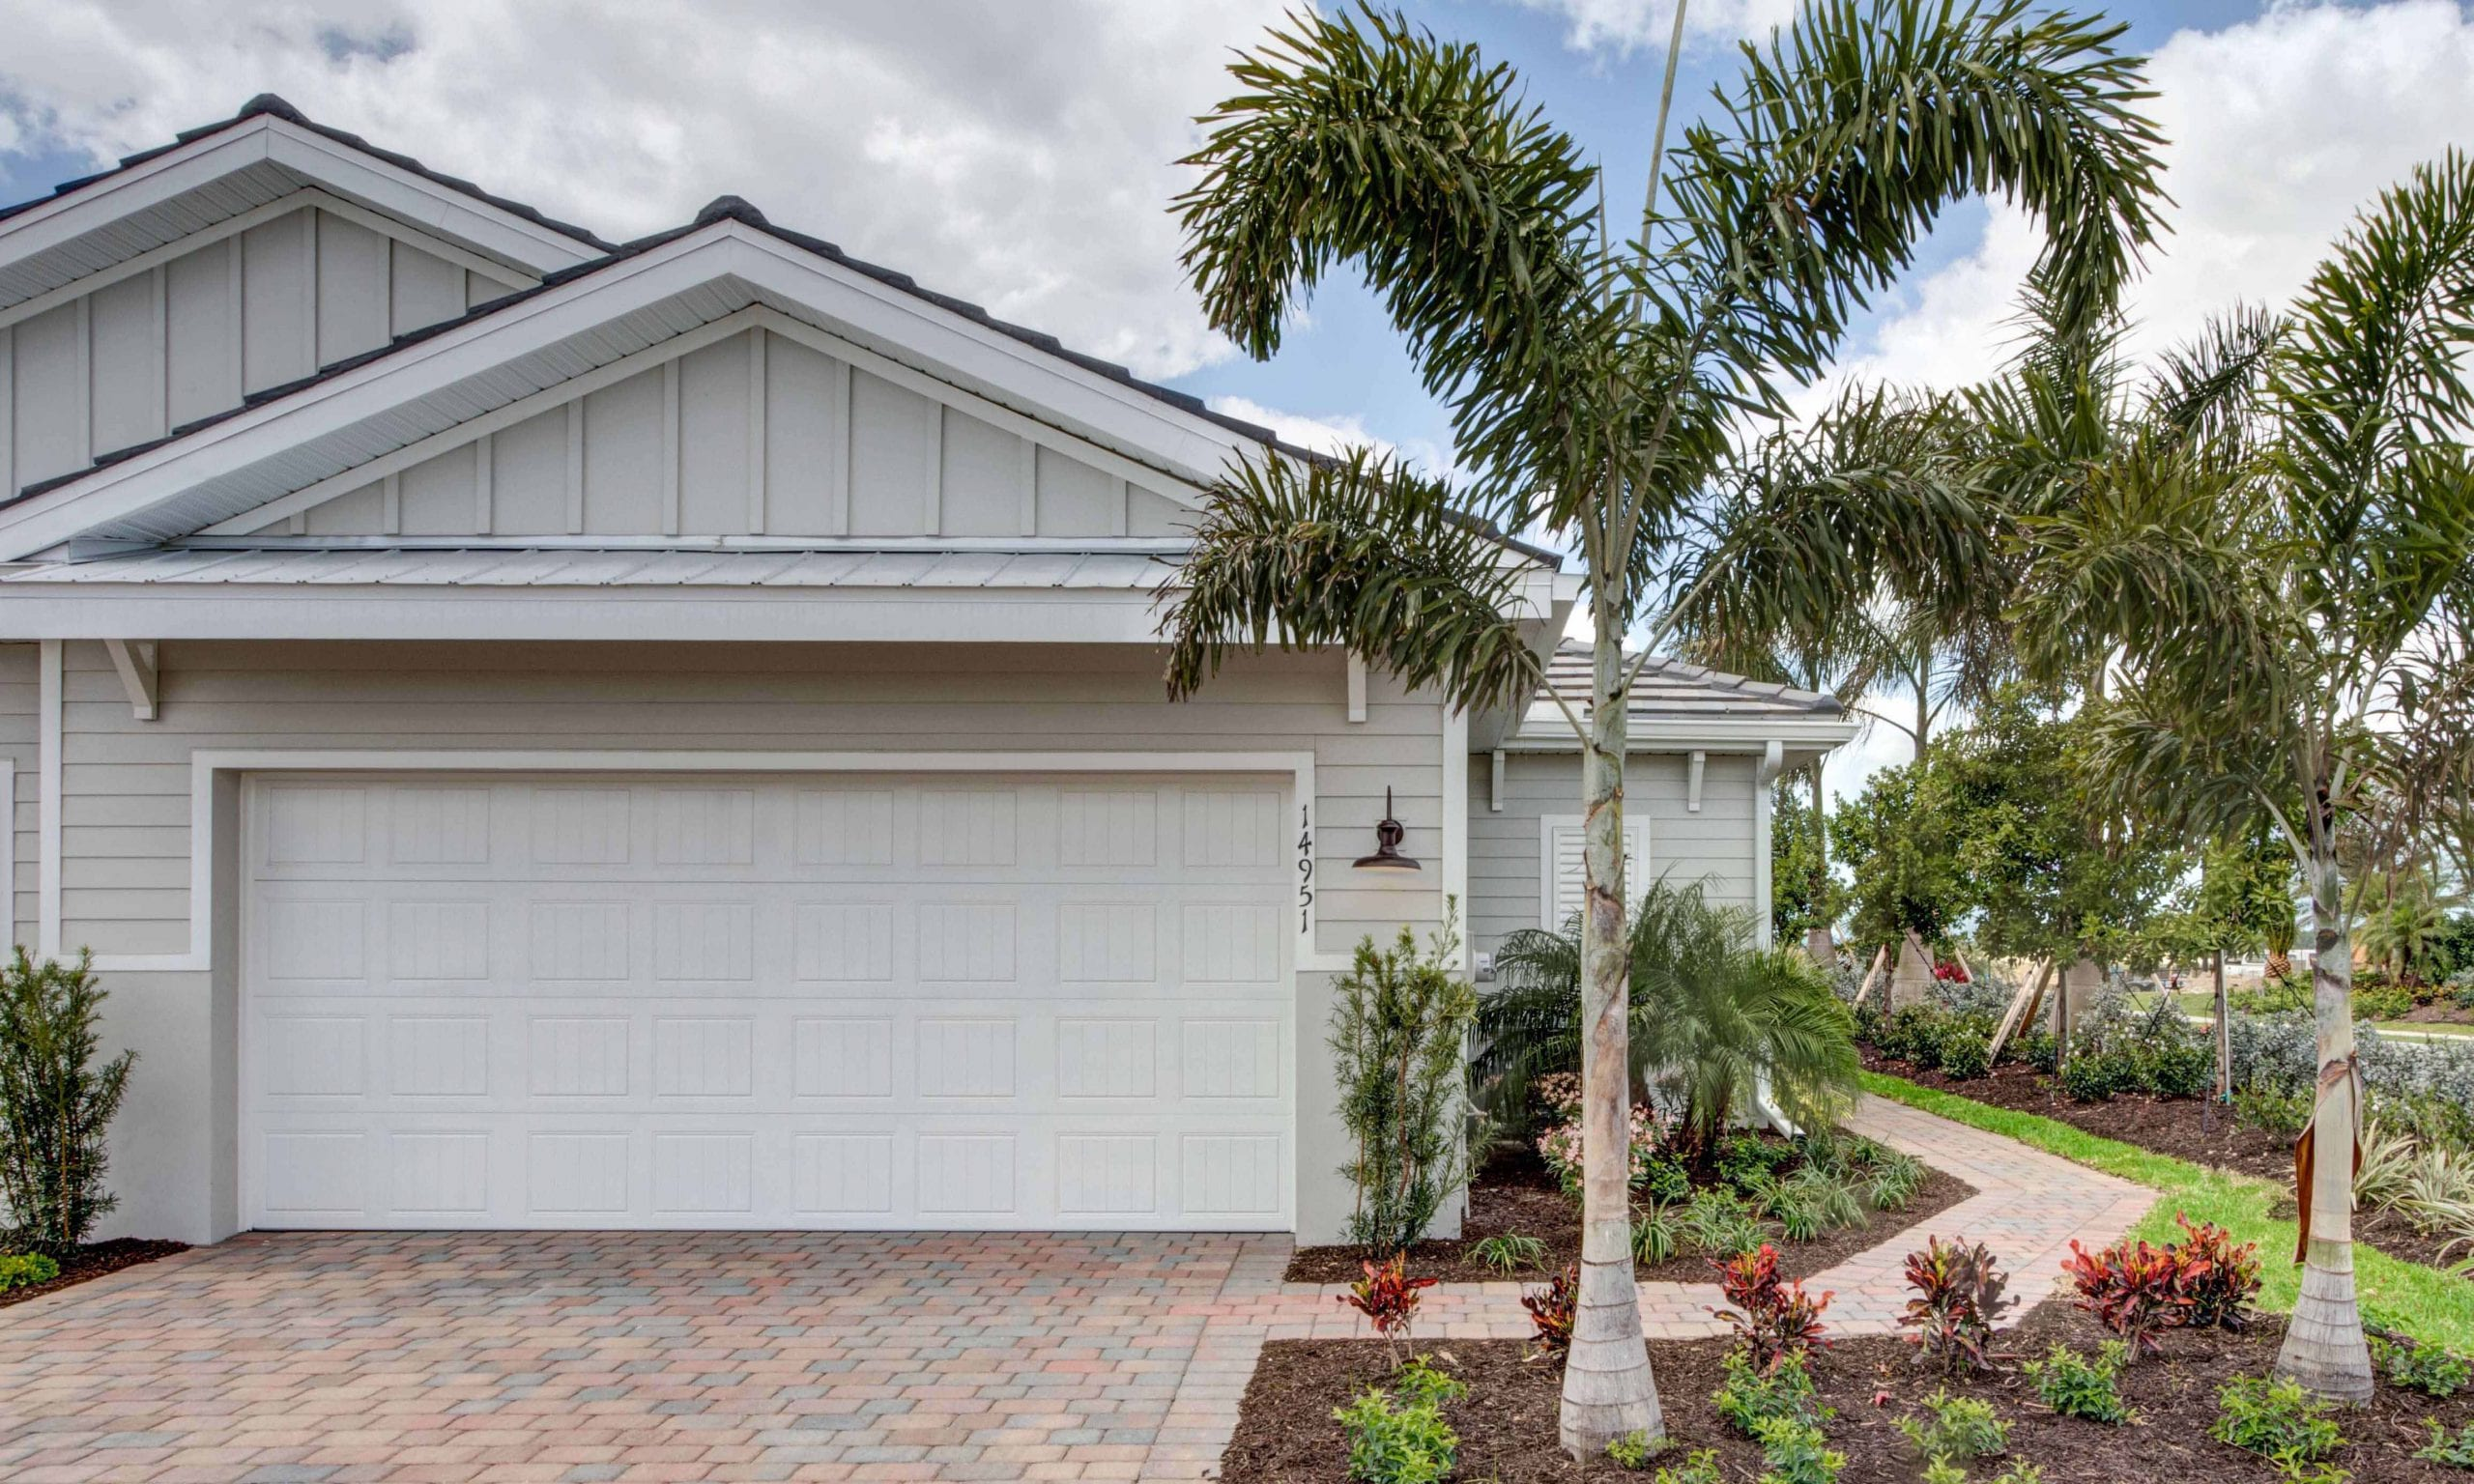 Realtors aren't just selling Naples Reserve – they're living there too